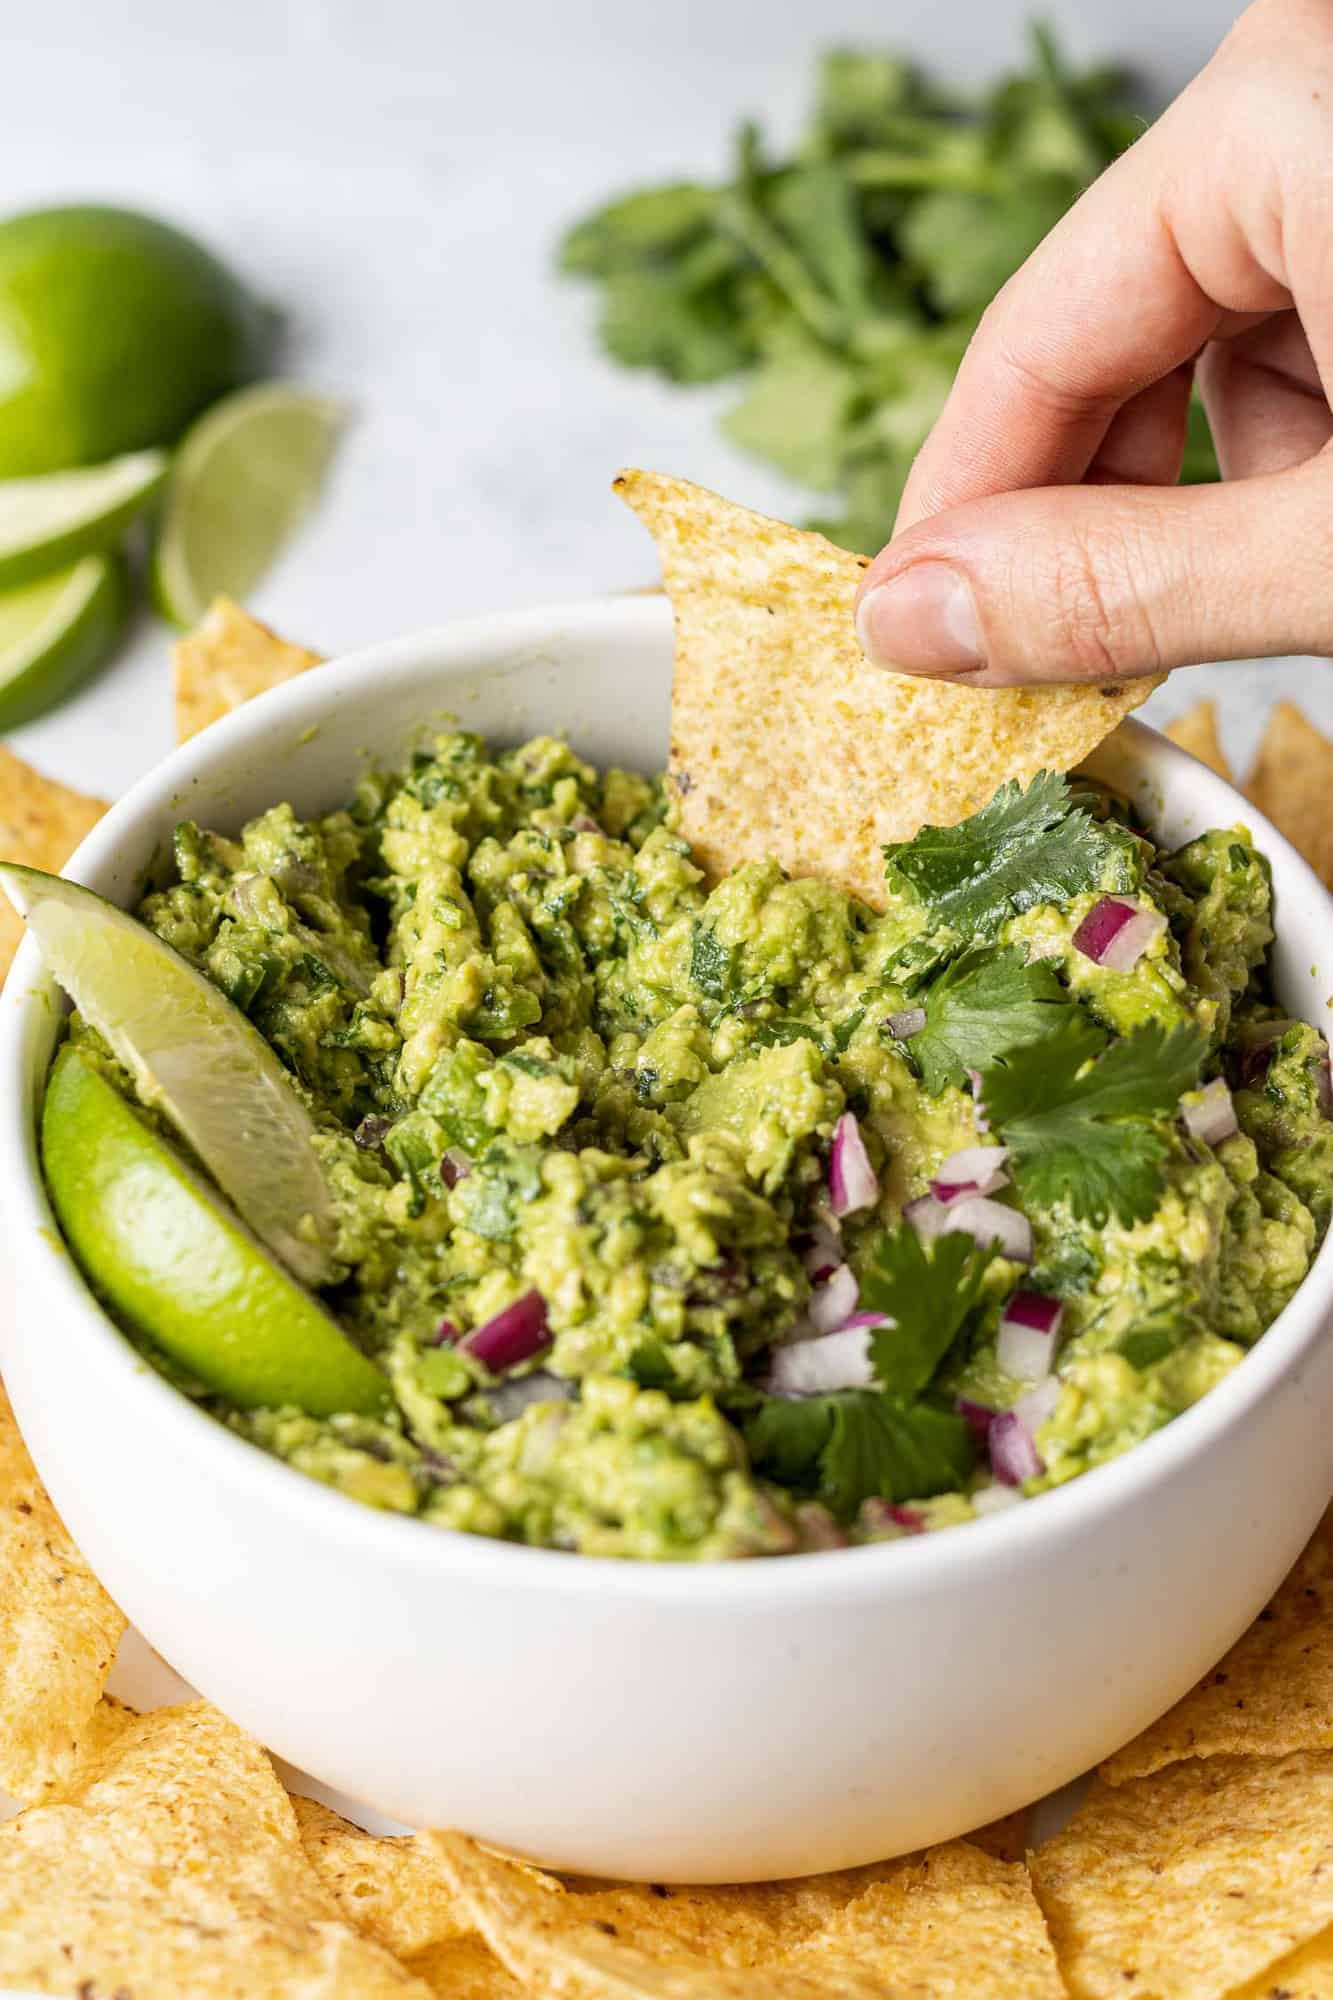 Chip being dipped into a bowl of guacamole.